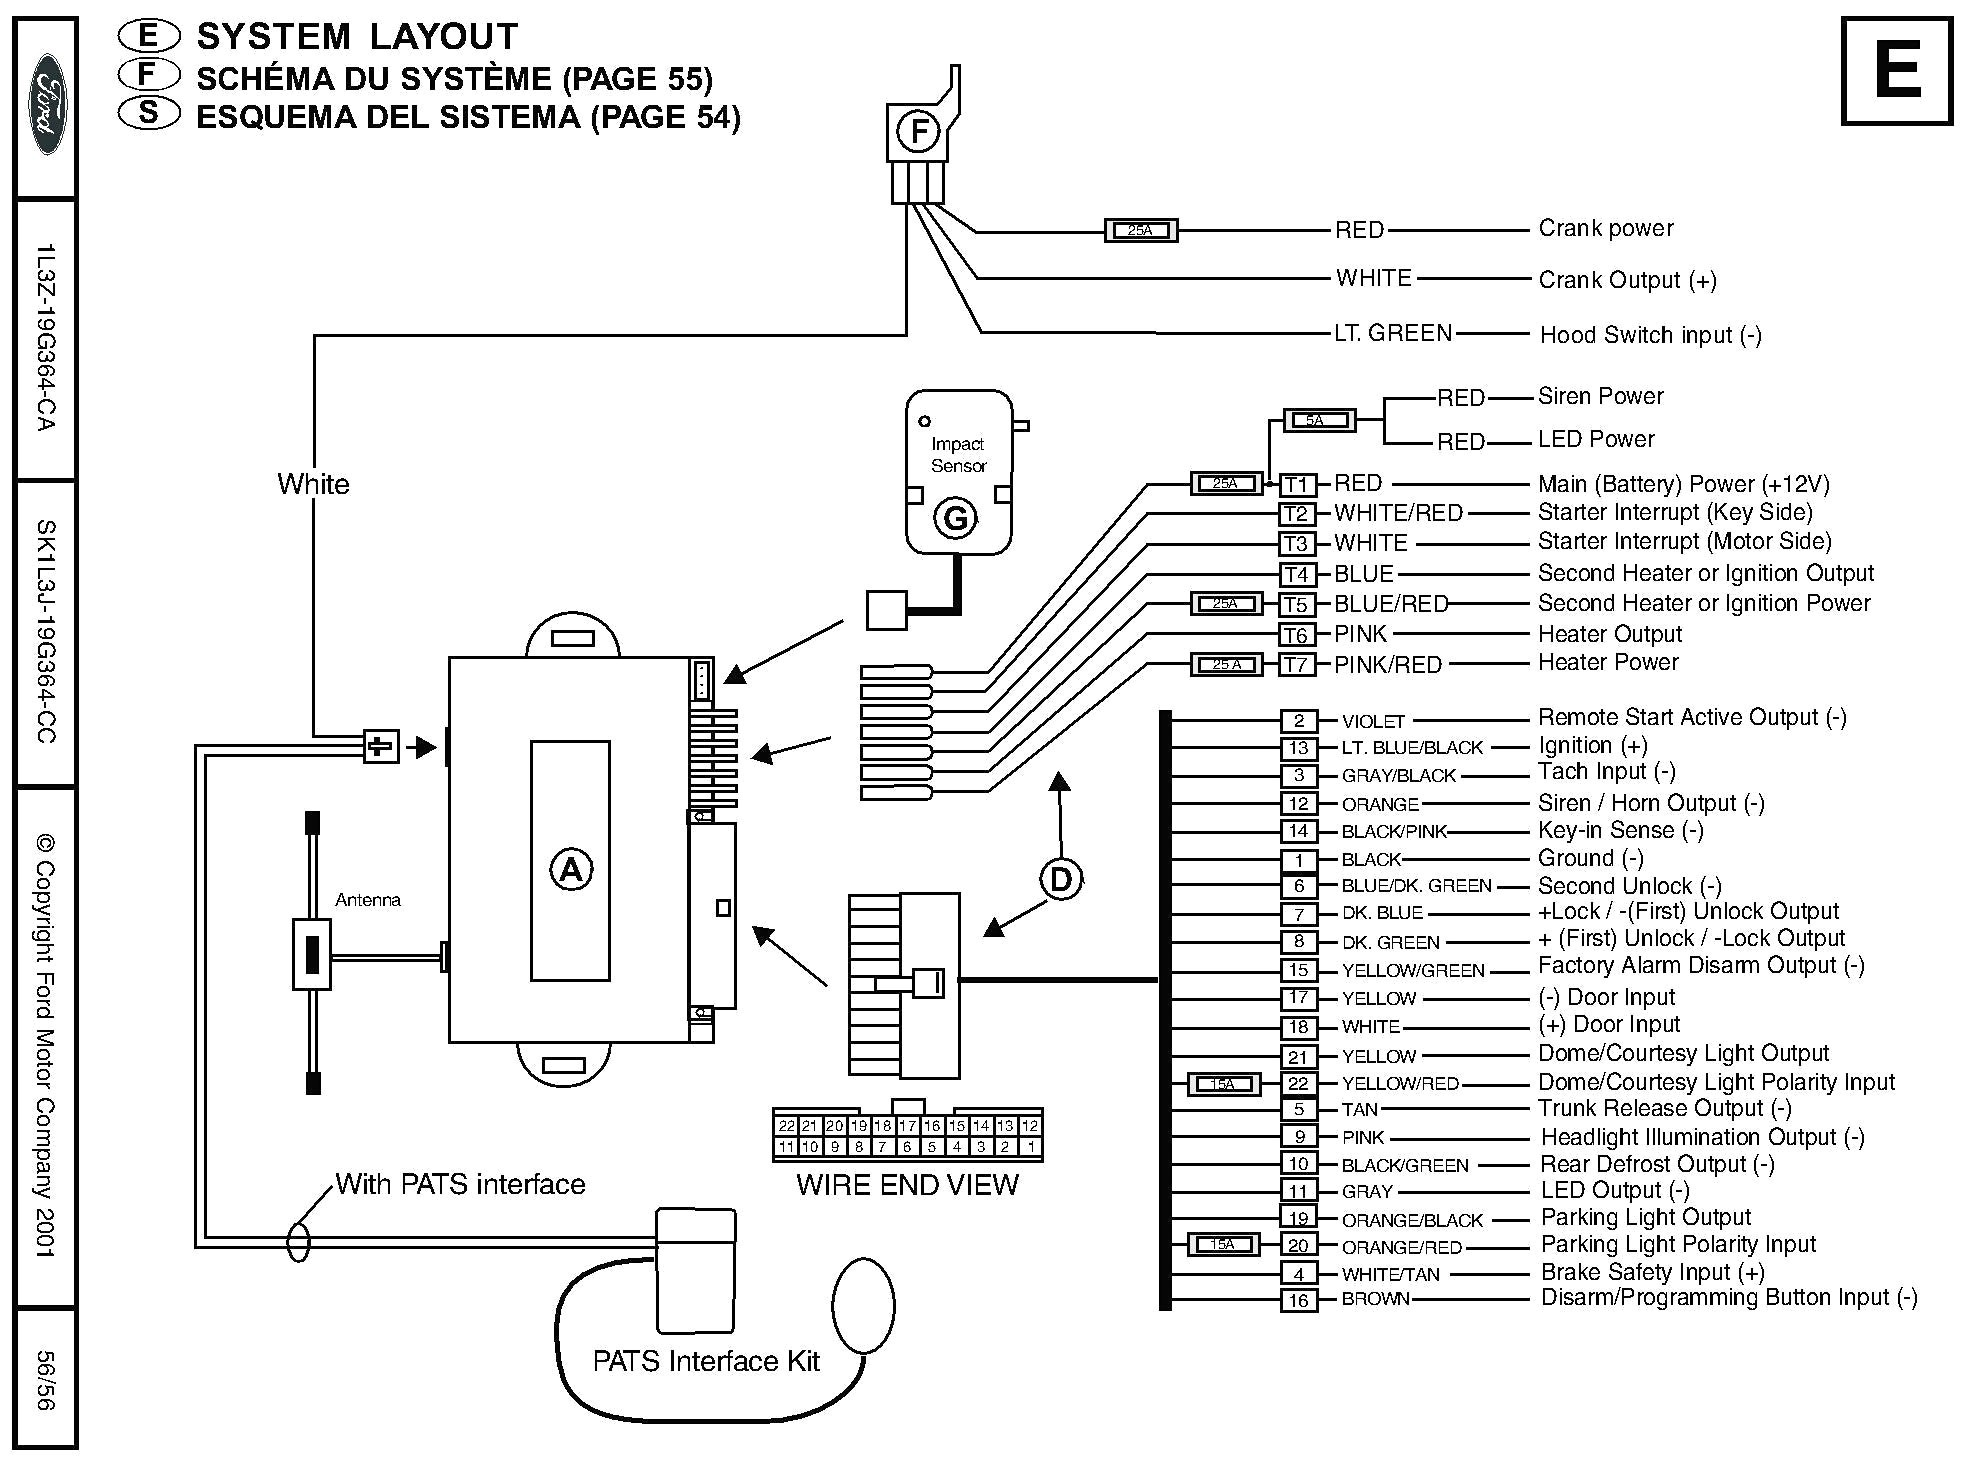 Car Ignition System Diagram Car Ignition System Wiring Diagram – My ...